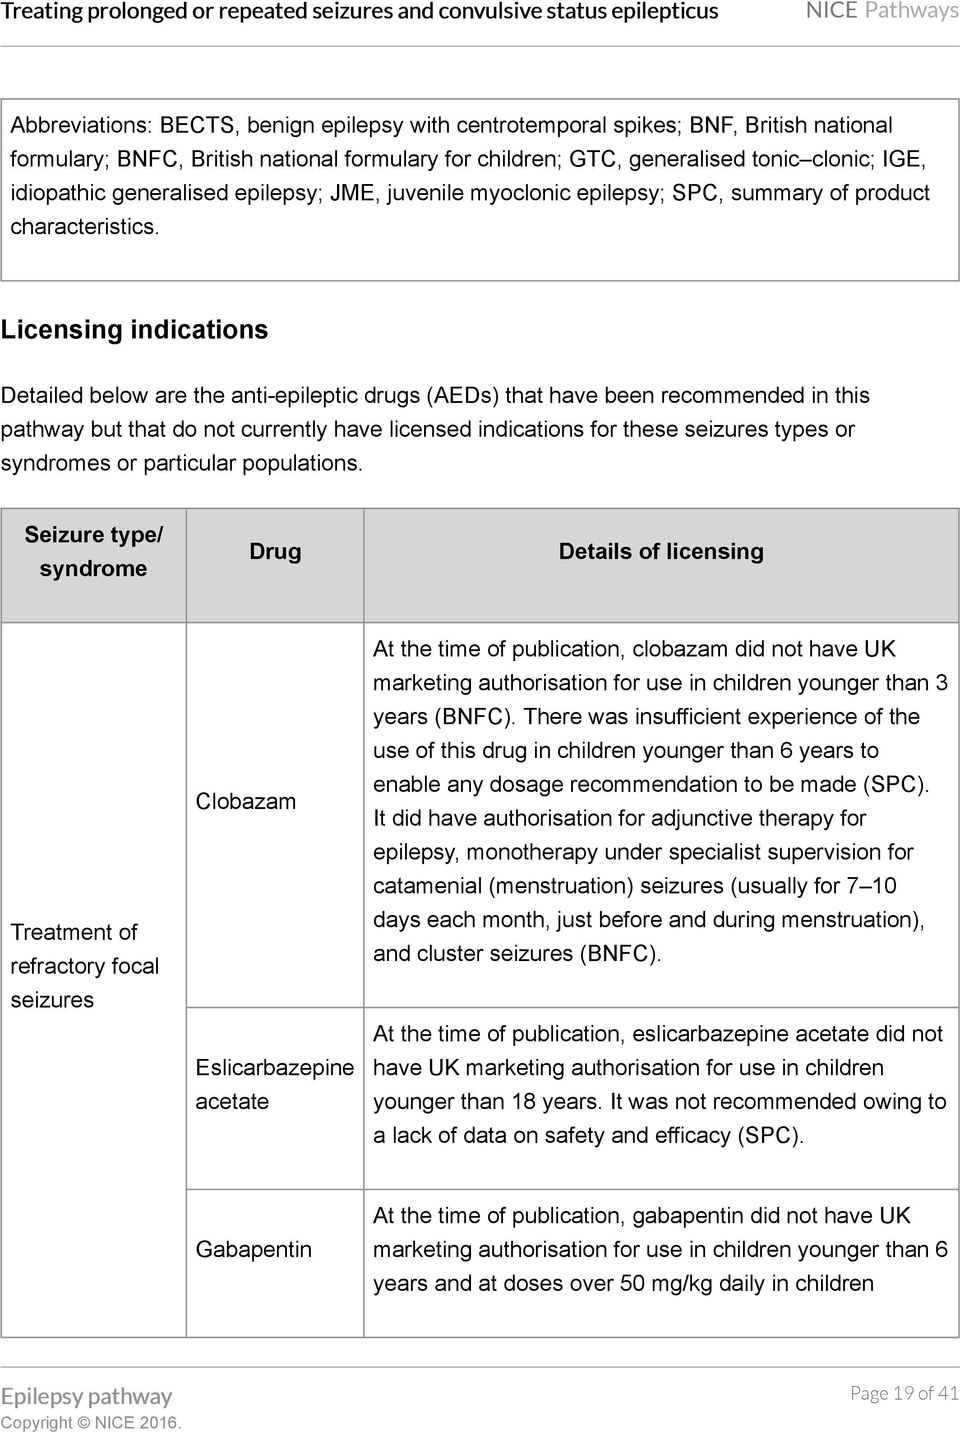 Licensing indications Detailed below are the anti-epileptic drugs (AEDs) that have been recommended in this pathway but that do not currently have licensed indications for these seizures types or